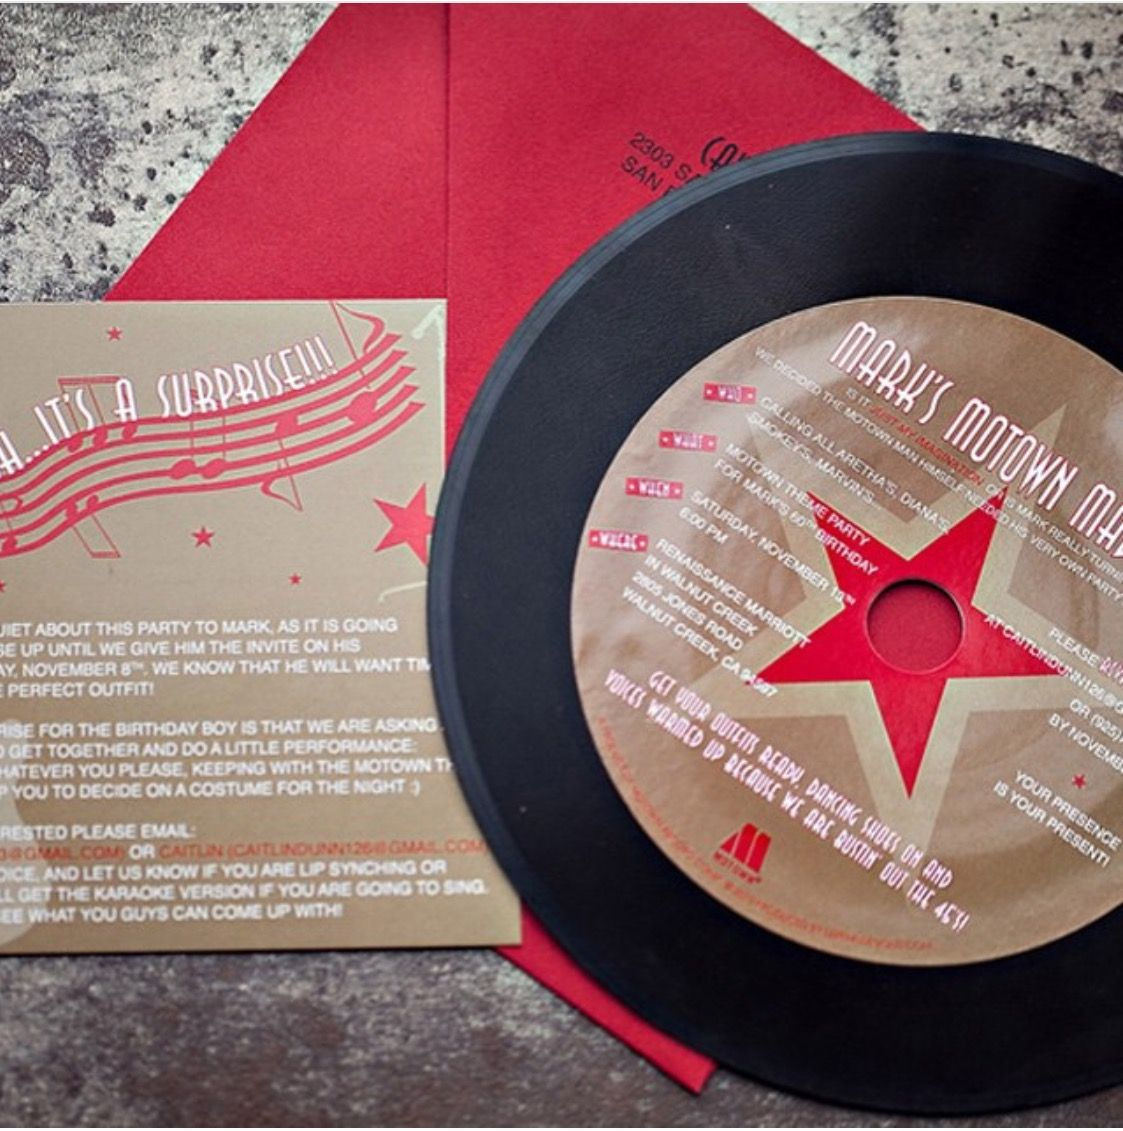 Custom 45 RPM vinyl record invitations designed by Lepenndesigns A